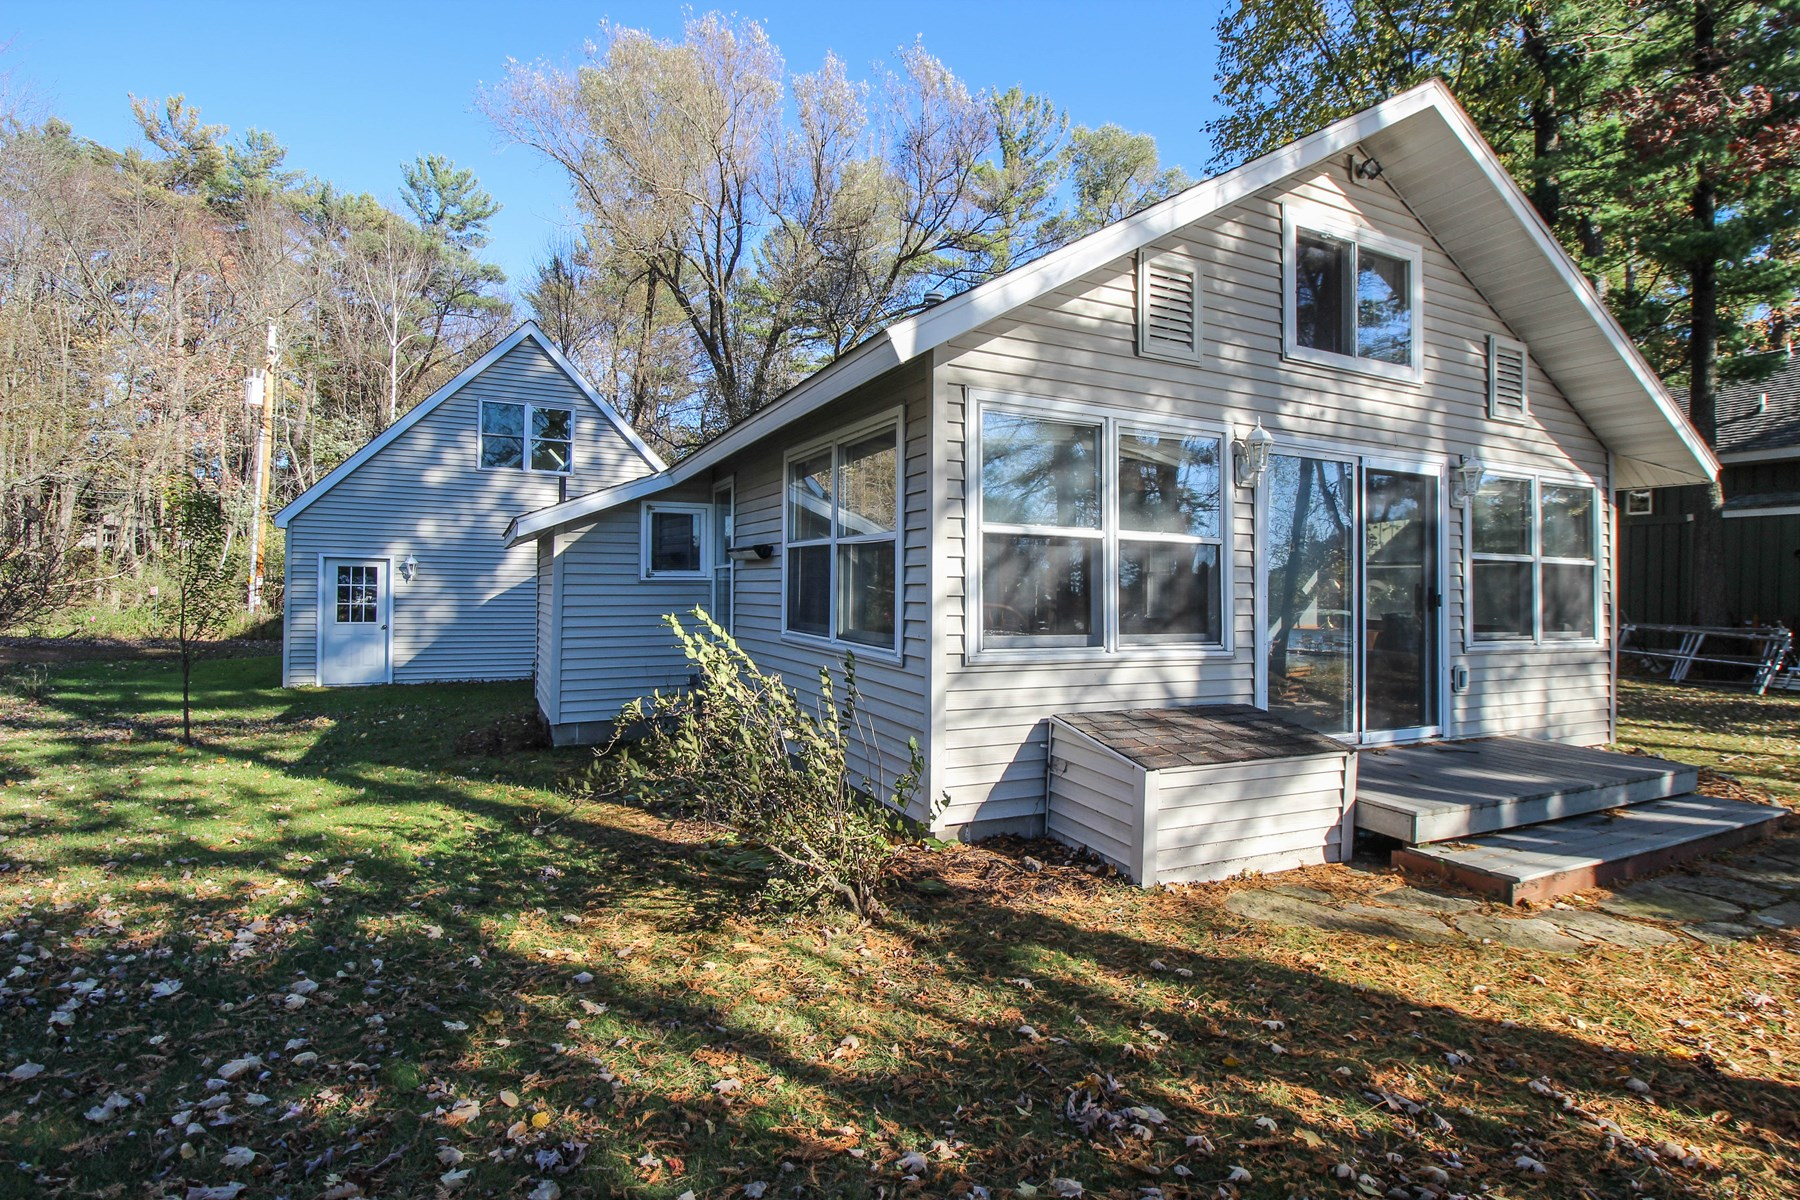 Lake Home for Sale on Waupaca Chain O' Lakes - Taylor Lake